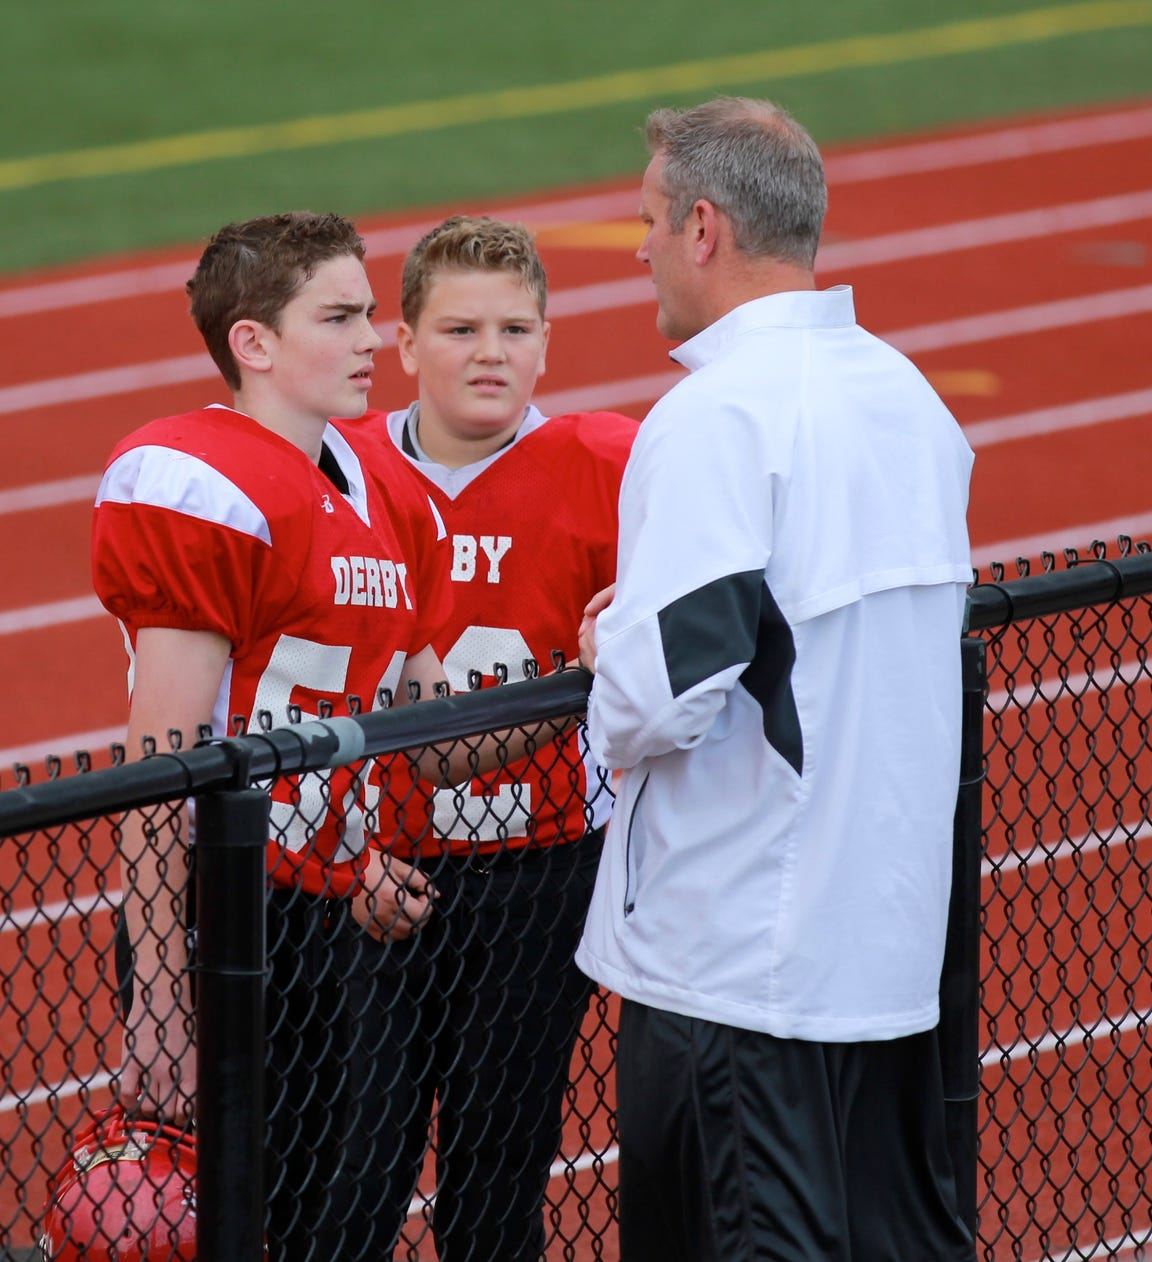 Caden and James DeWald talk to their father Jim on the sideline of a football game.